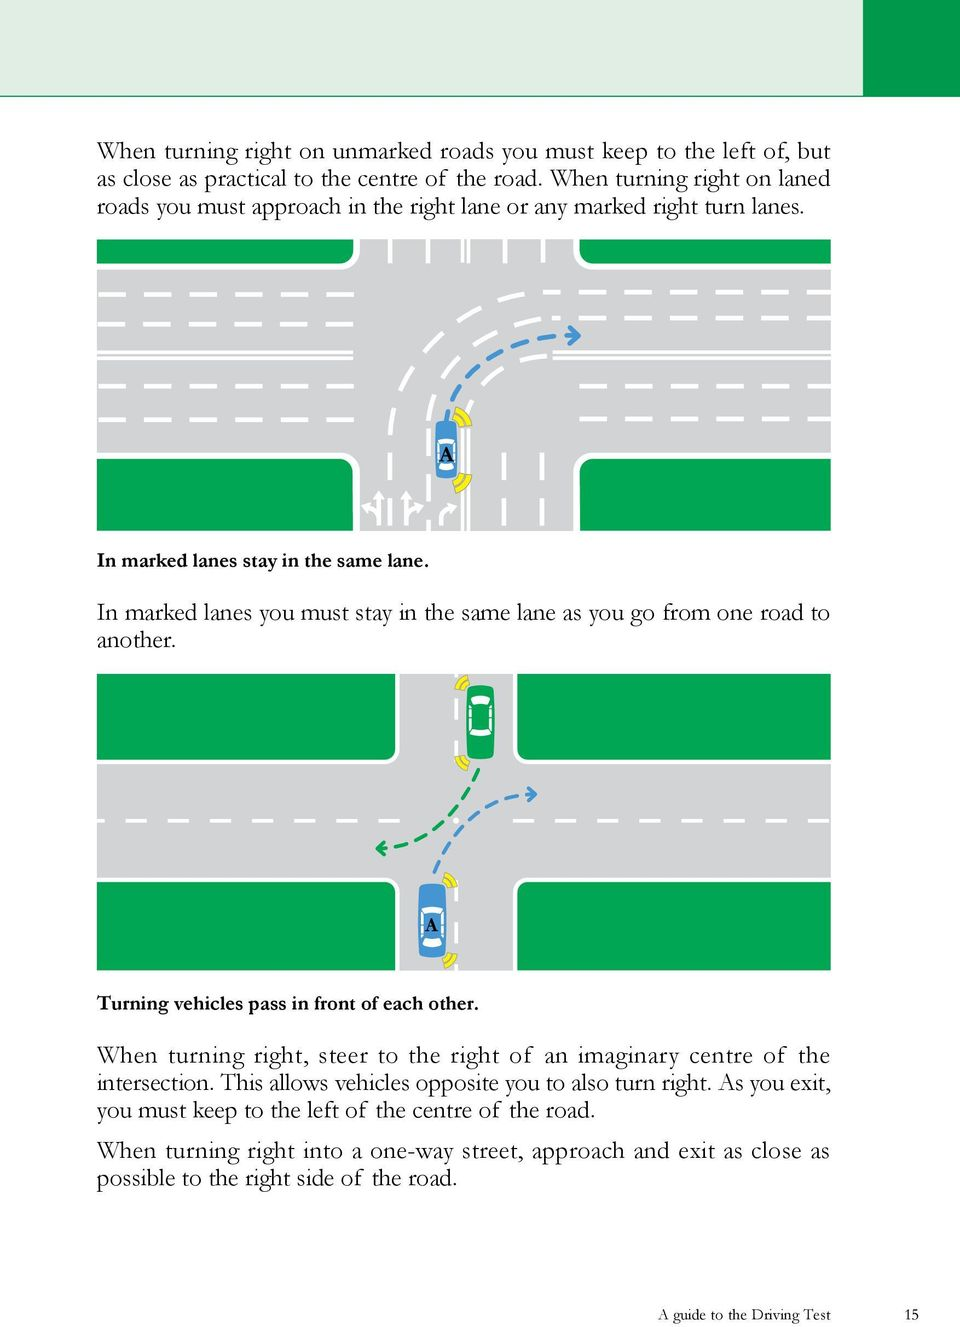 In marked lanes you must stay in the same lane as you go from one road to another. B Turning vehicles pass in front of each other.